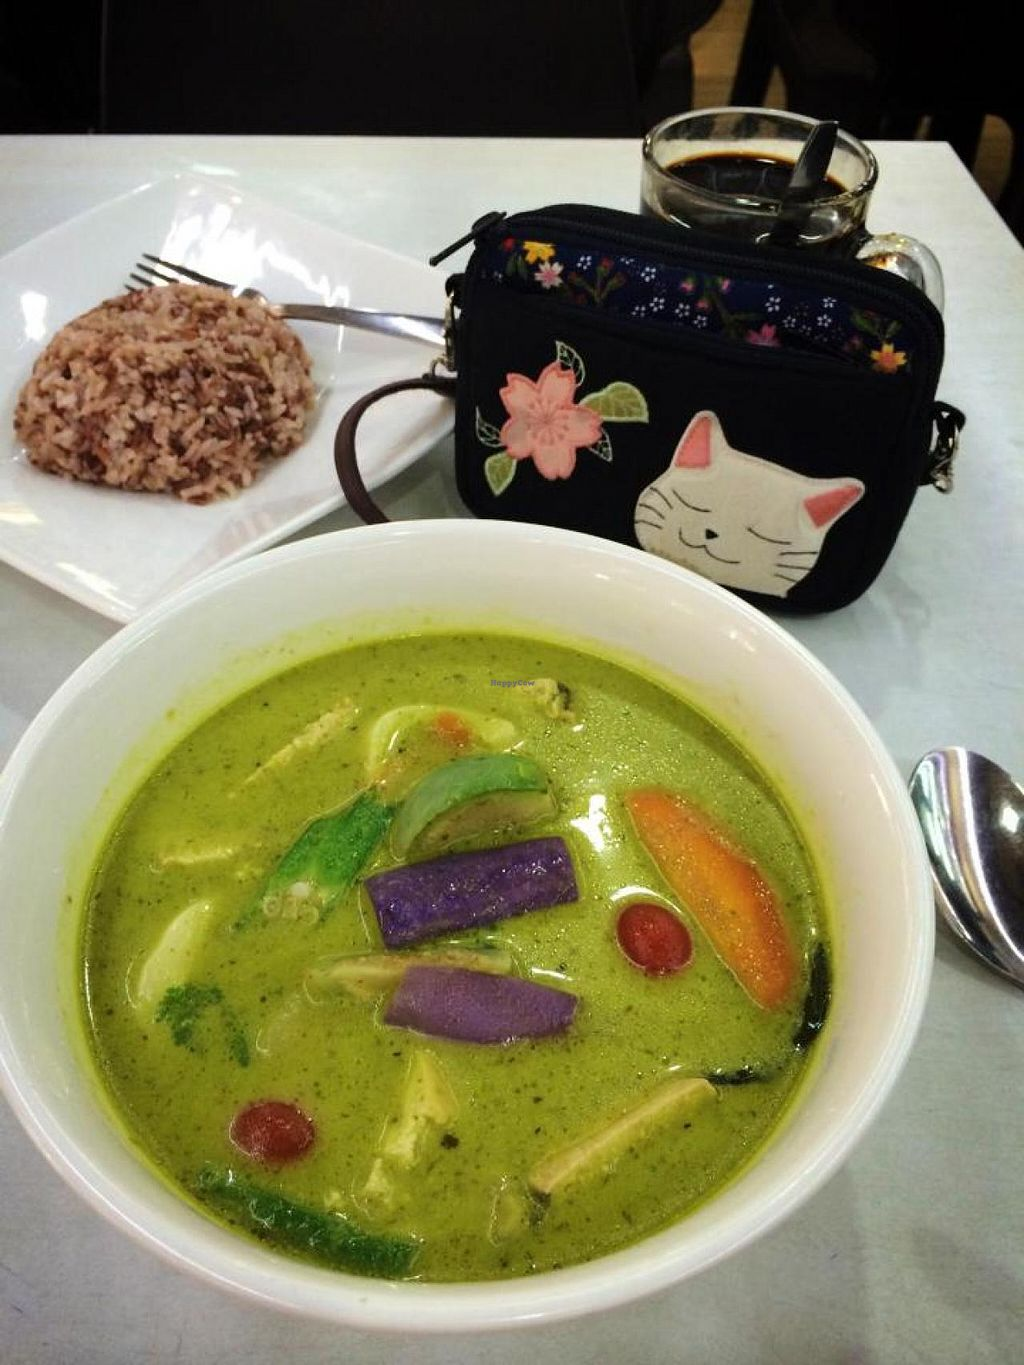 """Photo of Onn Vegetarian  by <a href=""""/members/profile/Kiwi%20Wannabe"""">Kiwi Wannabe</a> <br/>Delicious green curry.  This is a special so watch their Facebook page to see when they'll have it! <br/> December 1, 2014  - <a href='/contact/abuse/image/53410/87015'>Report</a>"""